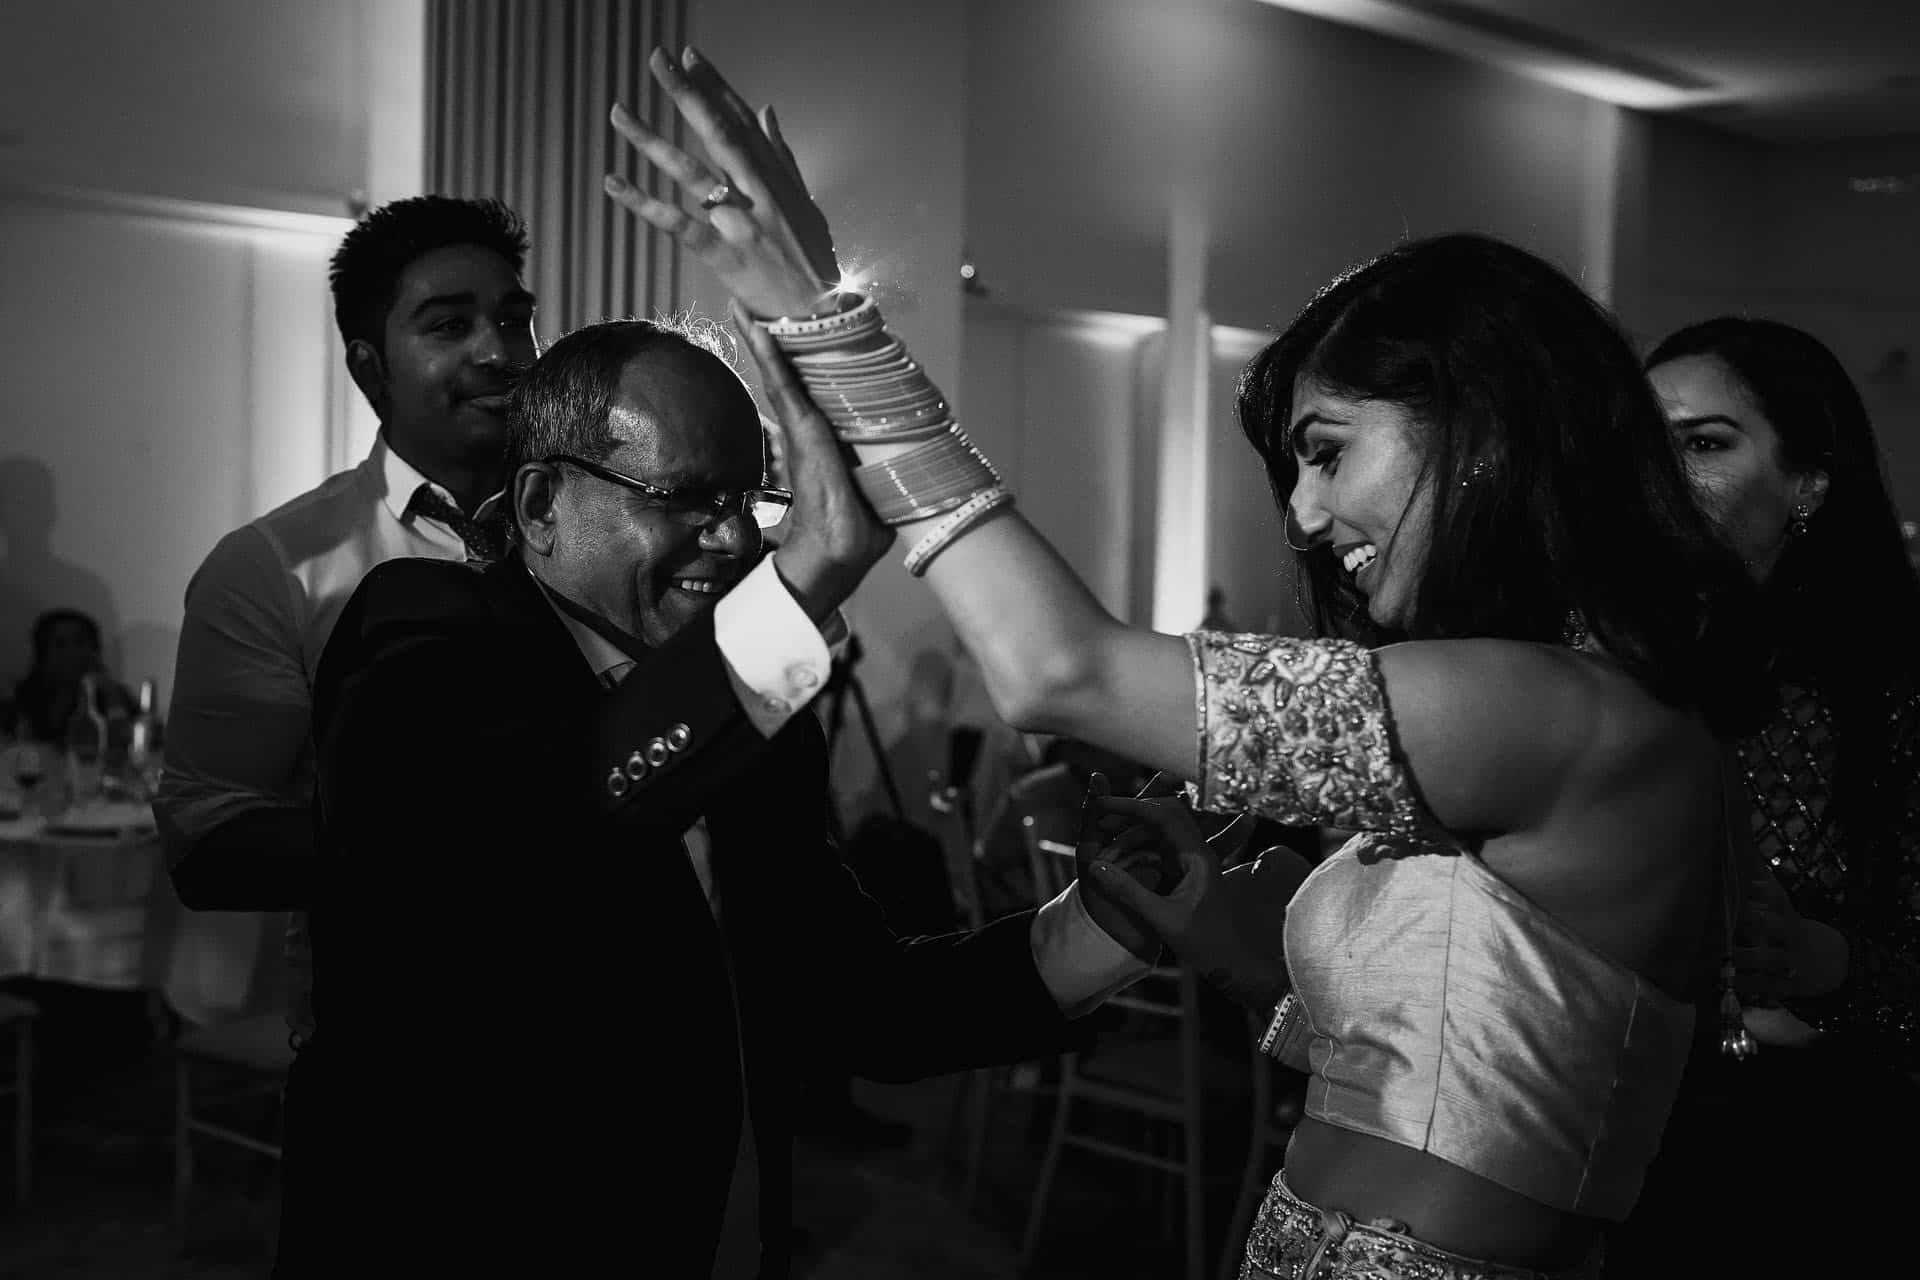 heythrop park hindu wedding photographer